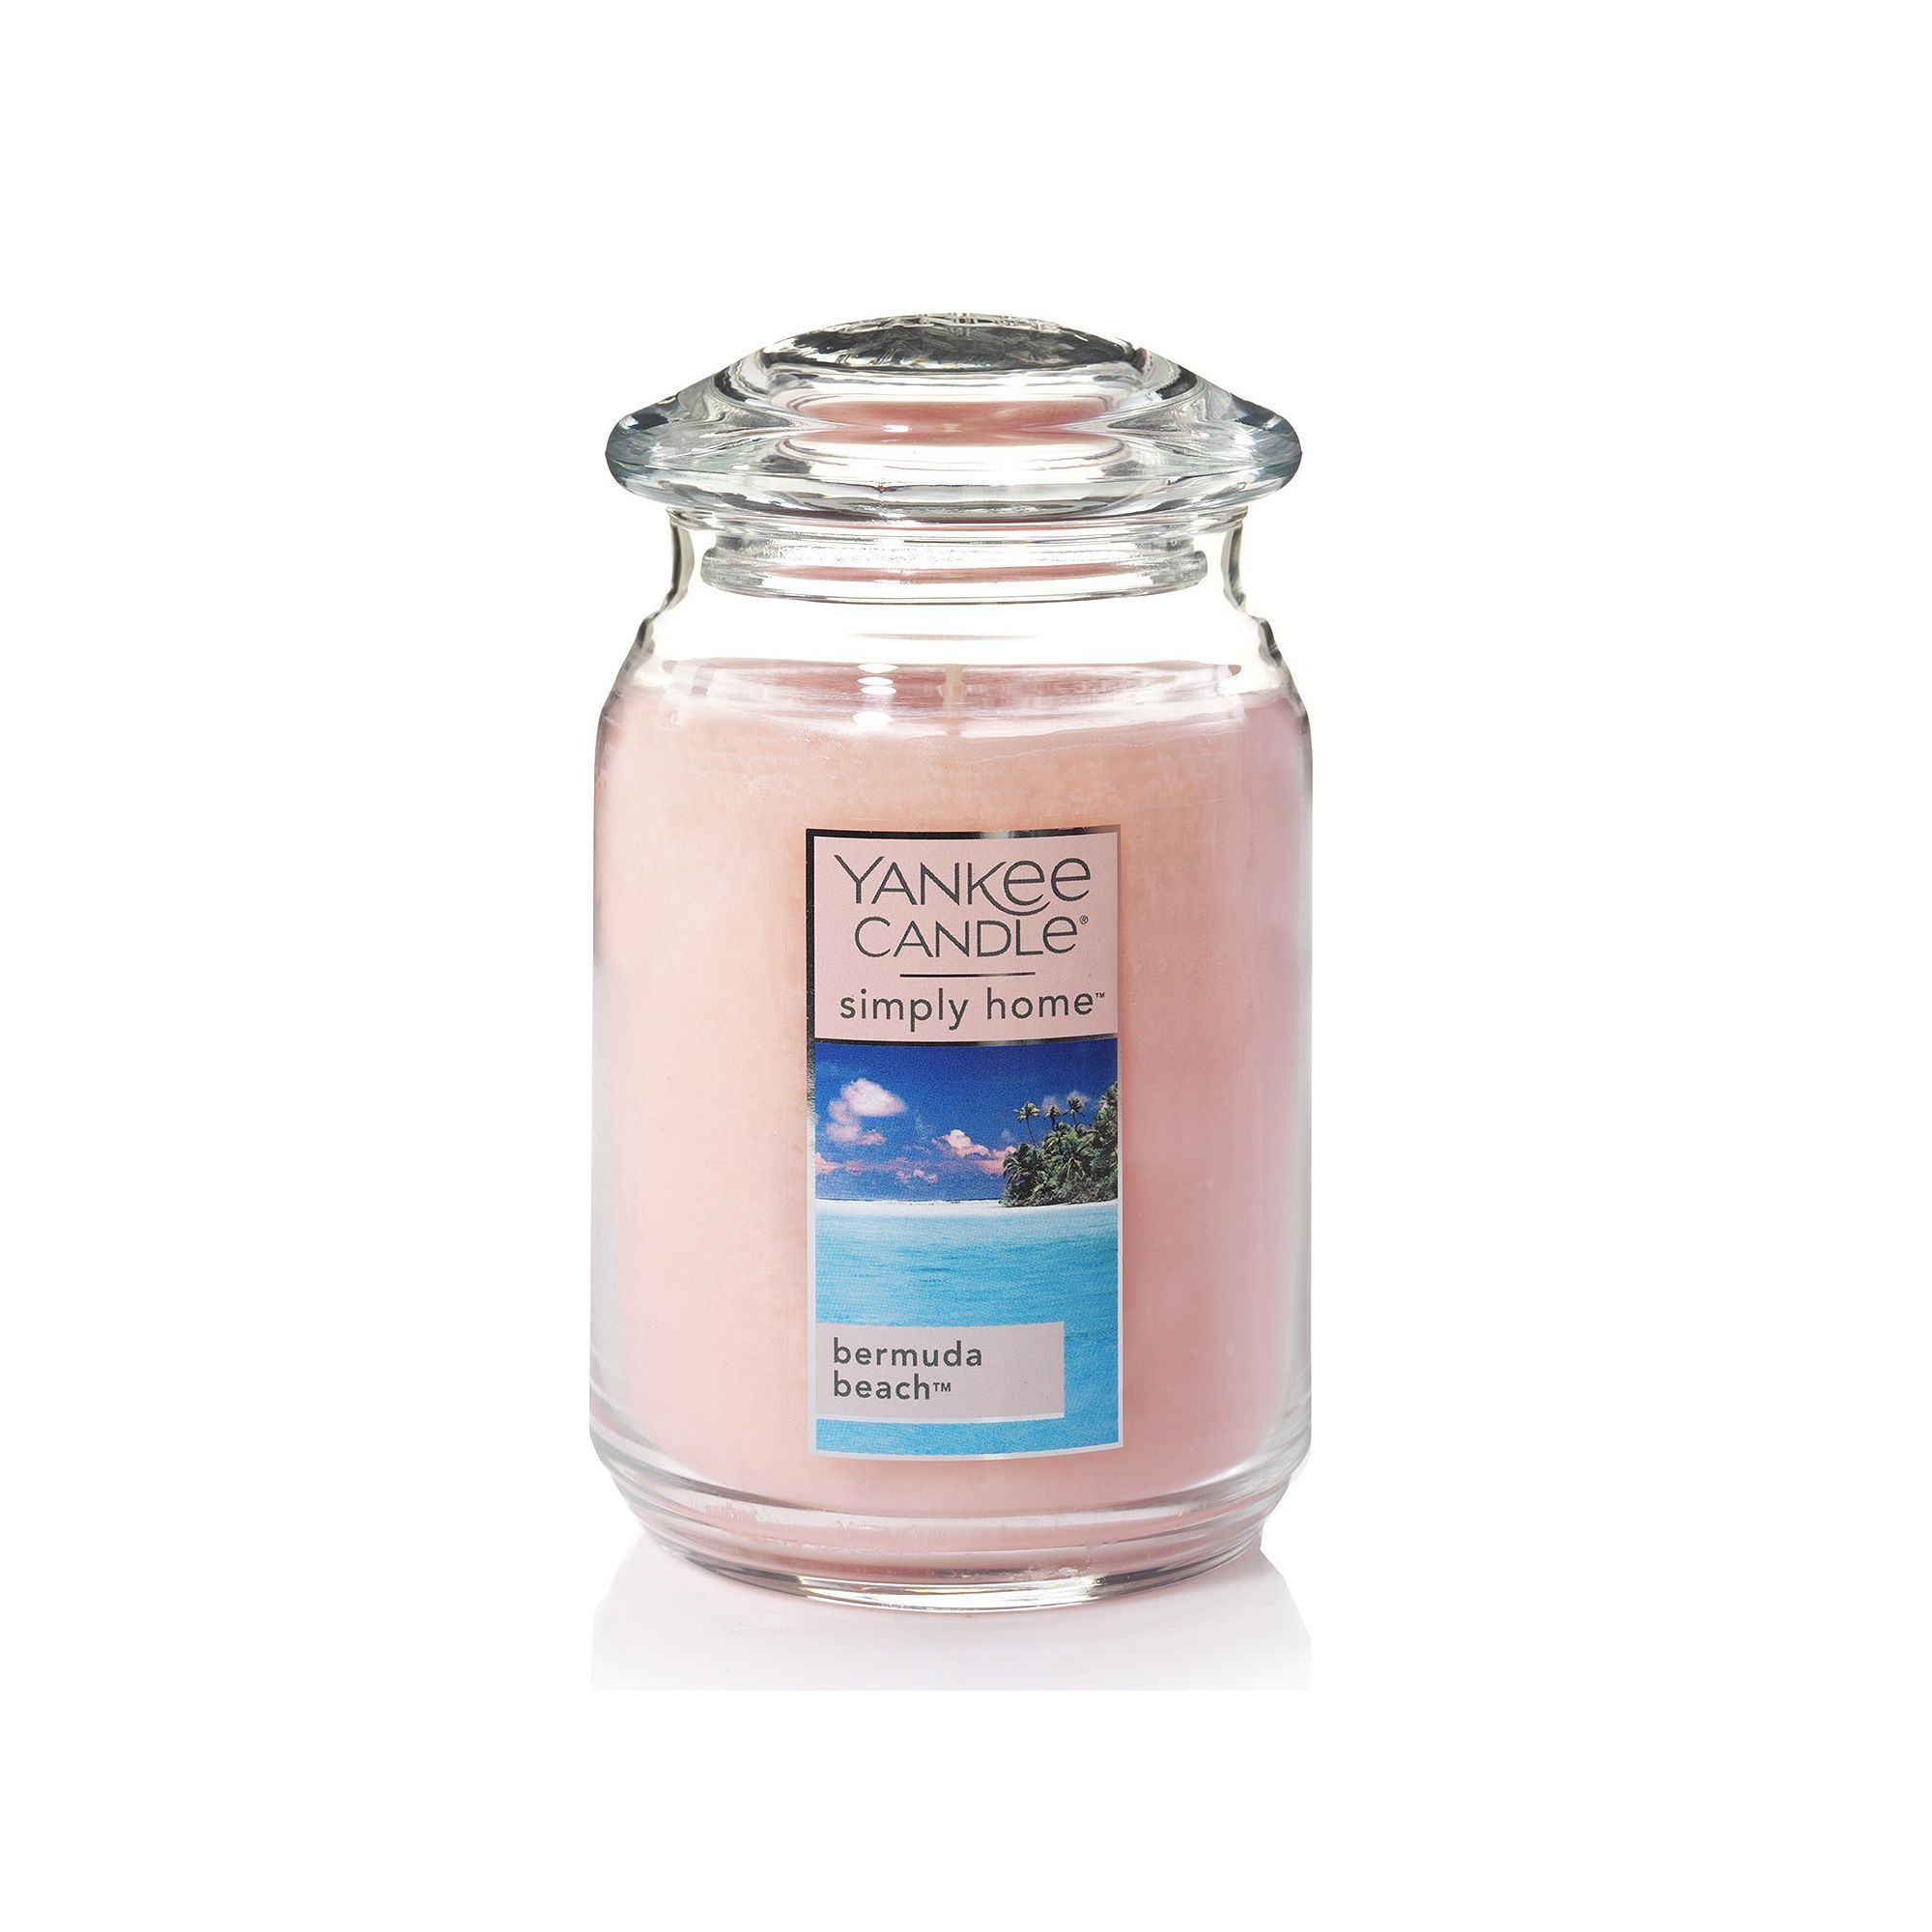 Yankee candle simply home bermuda beach large candle jar light pink